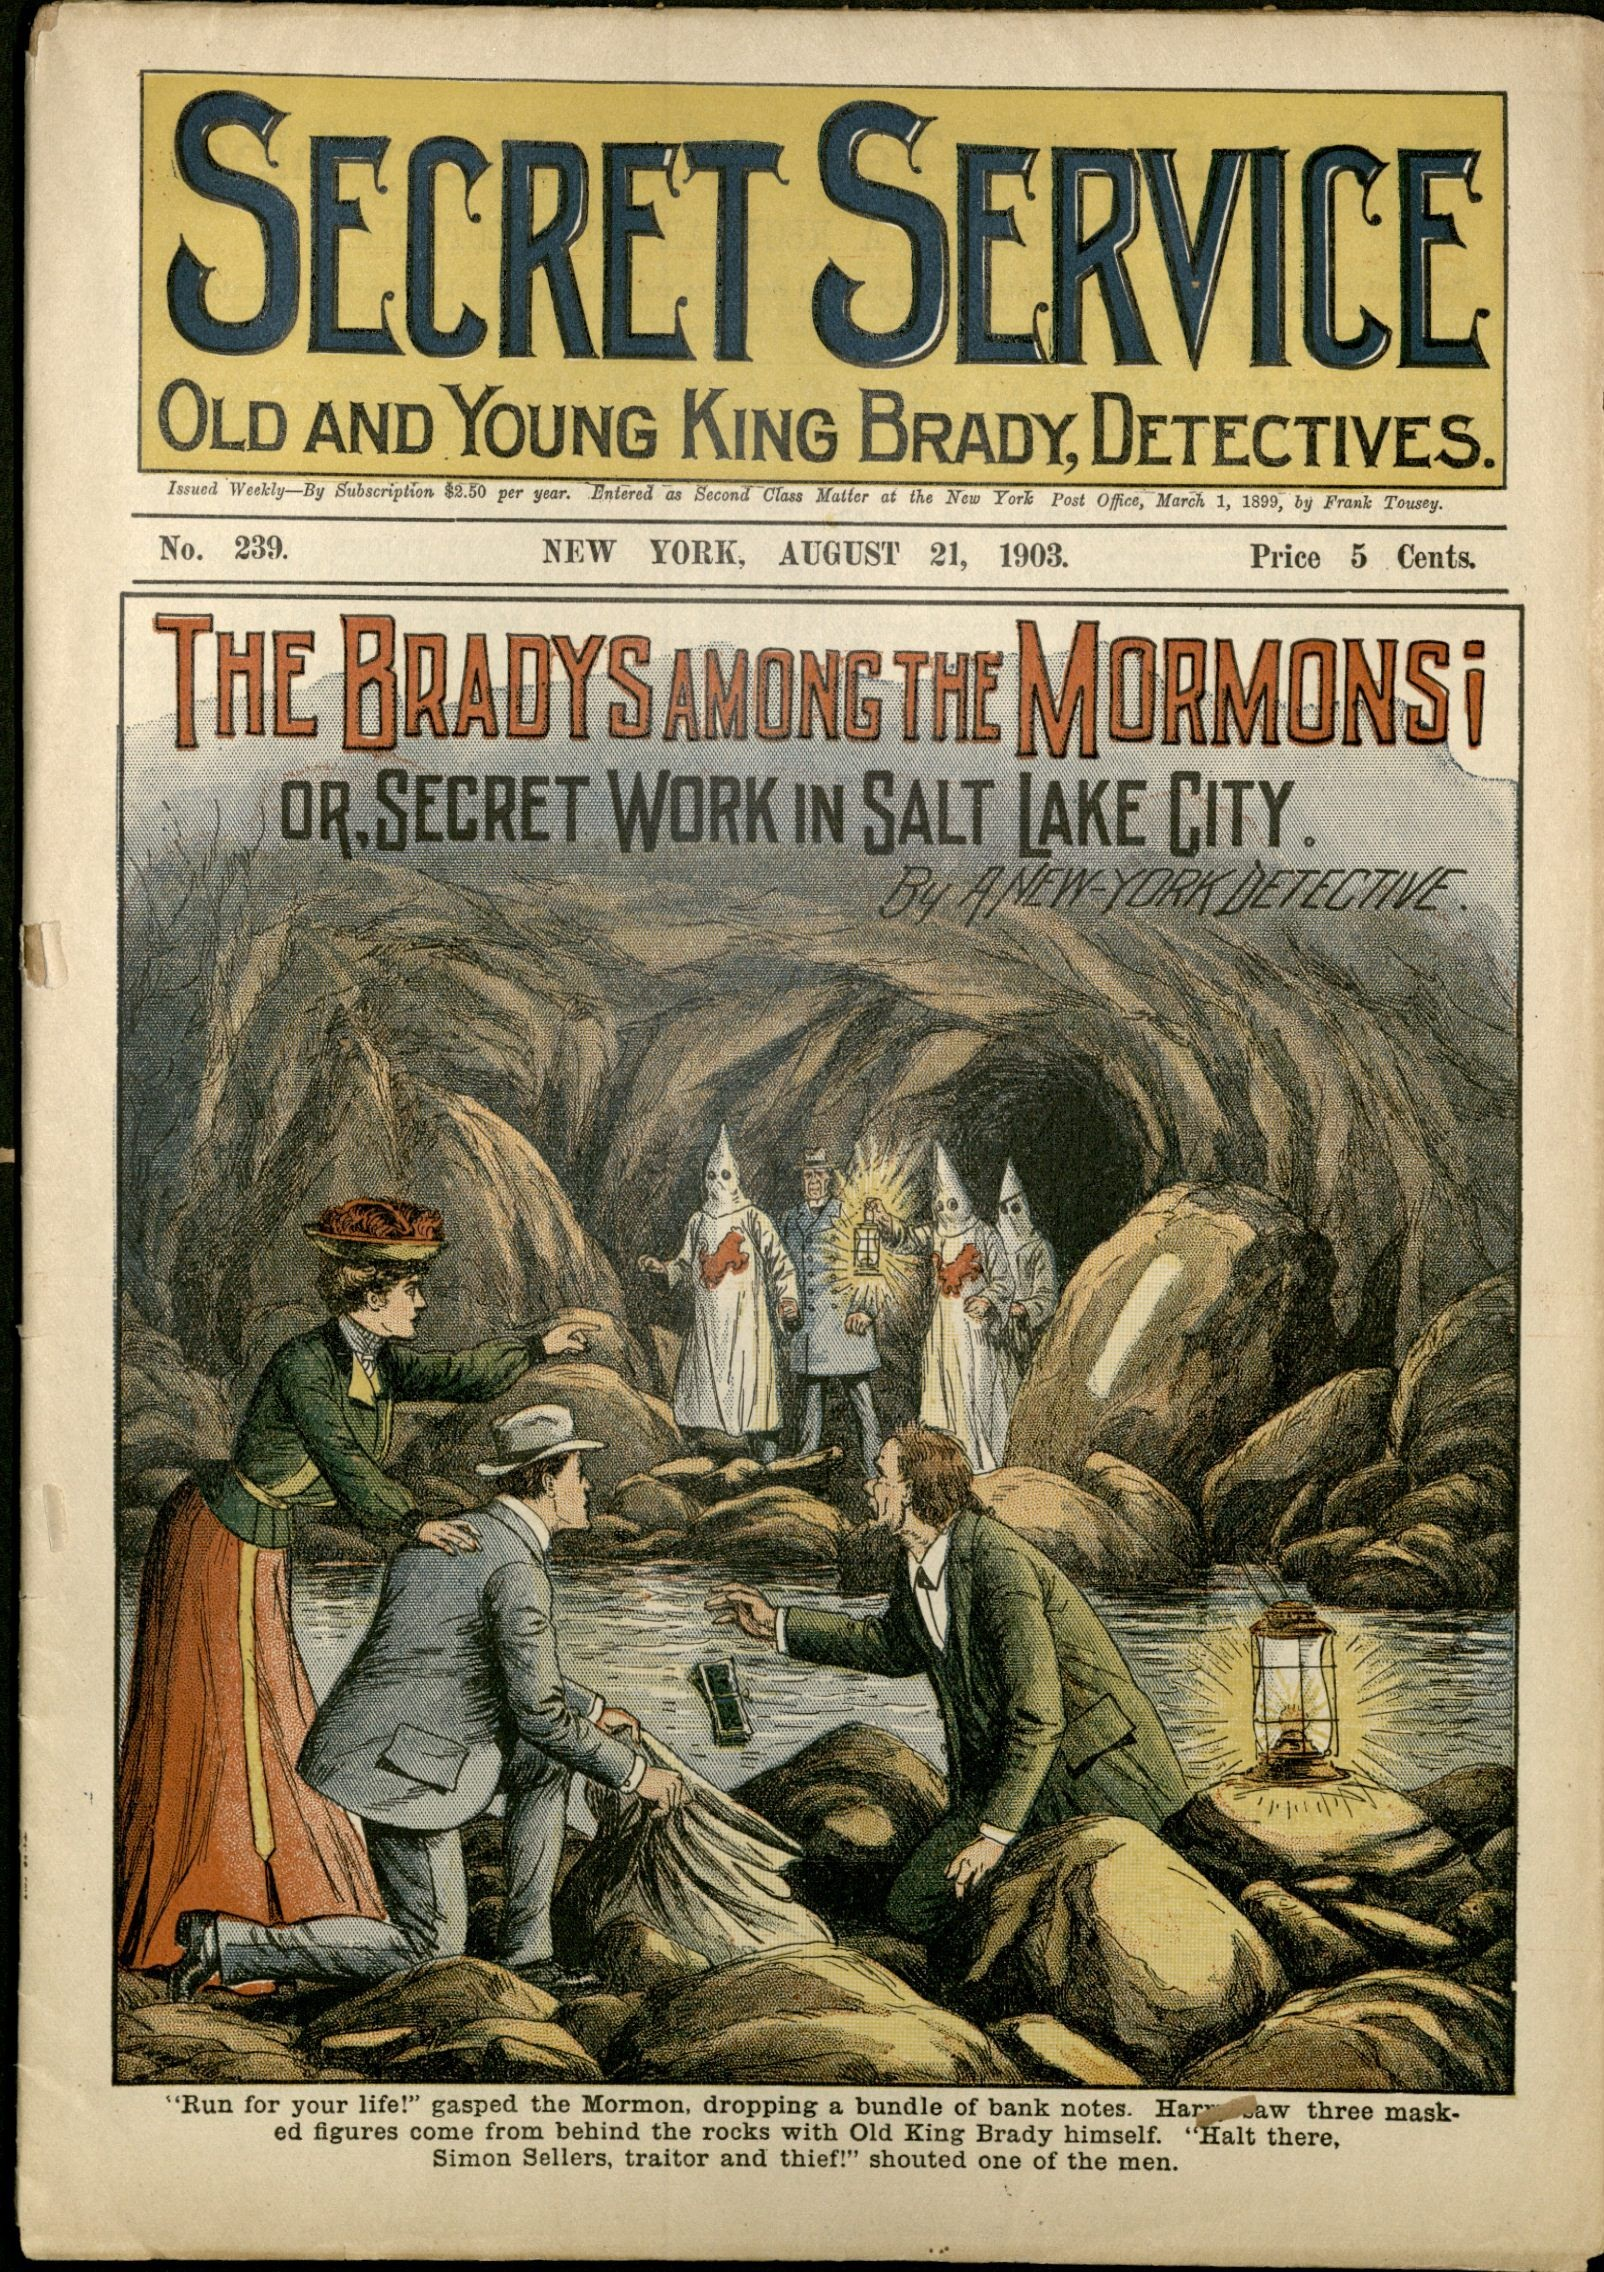 SecretService BradysAmongMormons issue239 1903Aug21 cover shows hooded mormons